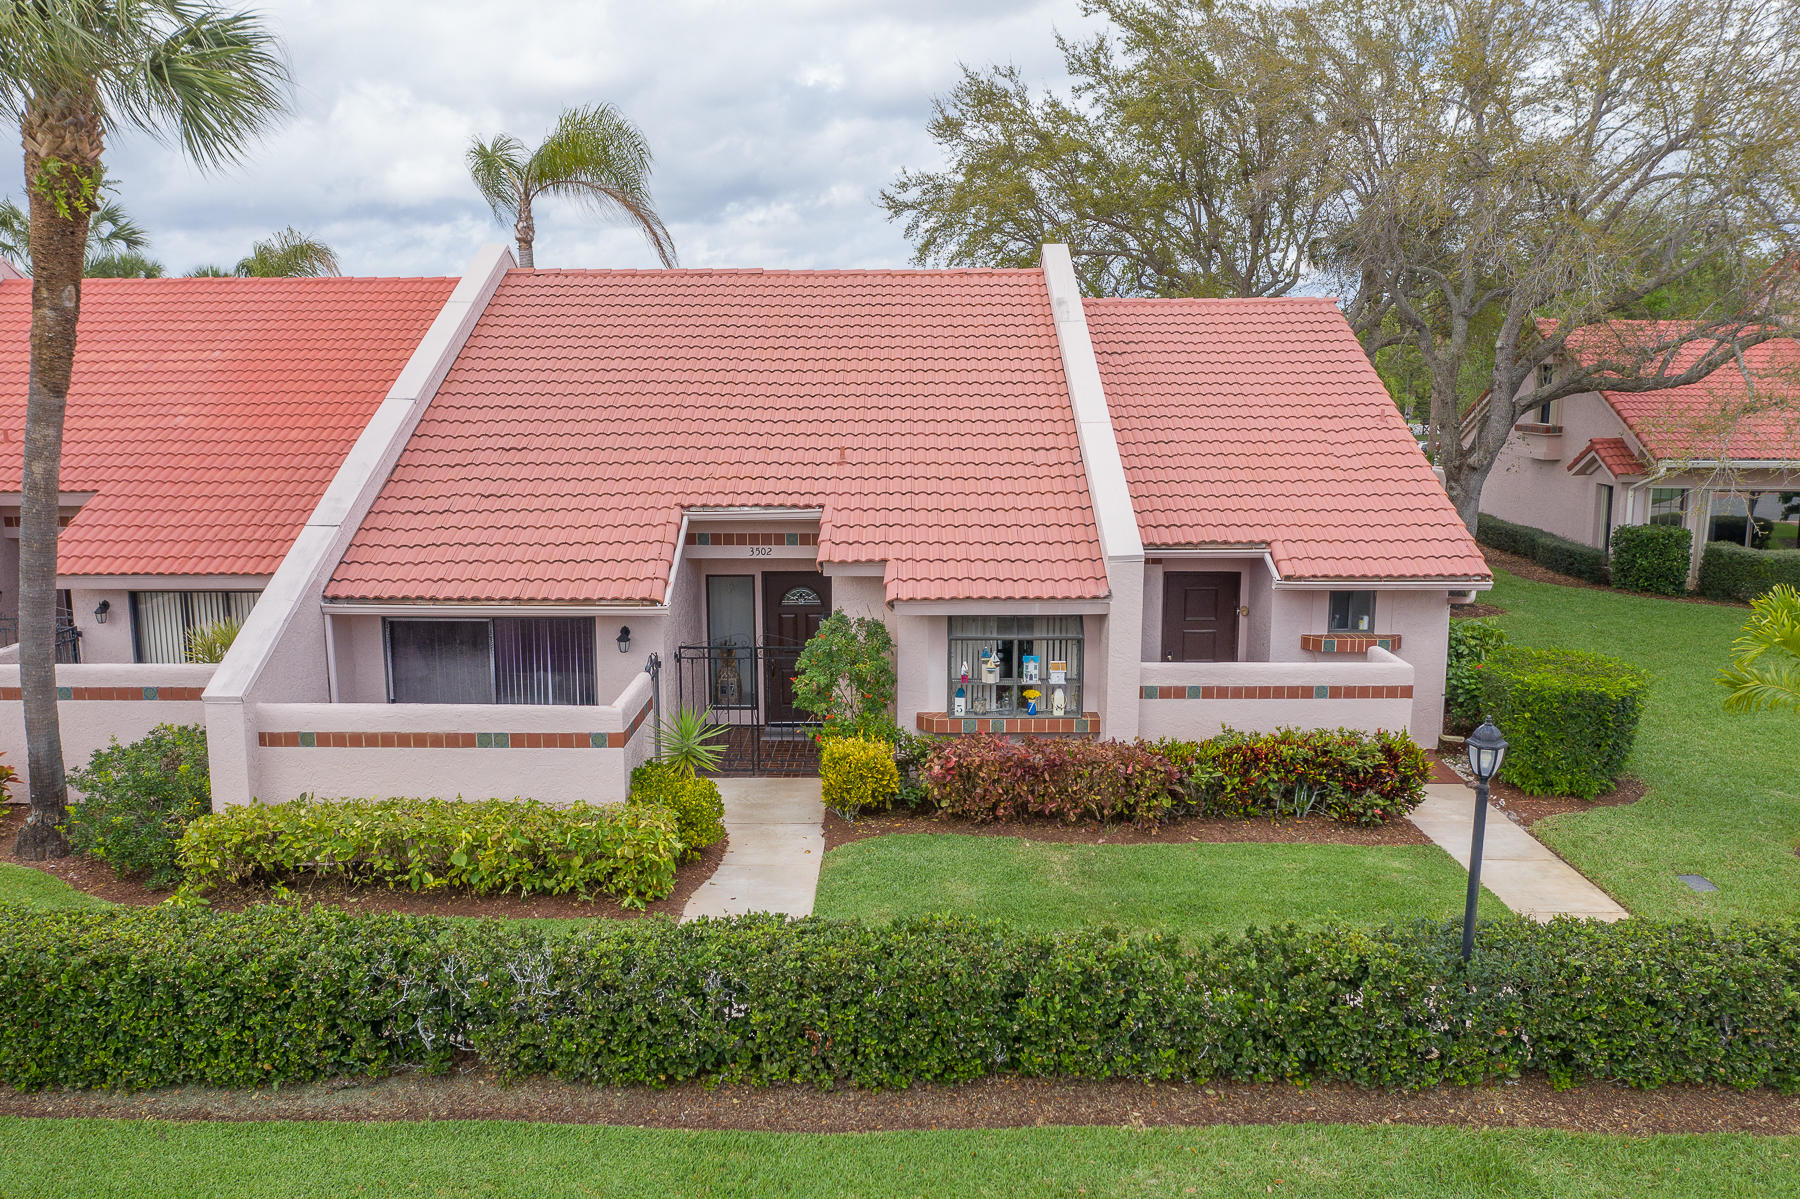 3502 Sandpiper, Port Saint Lucie, Florida 34952